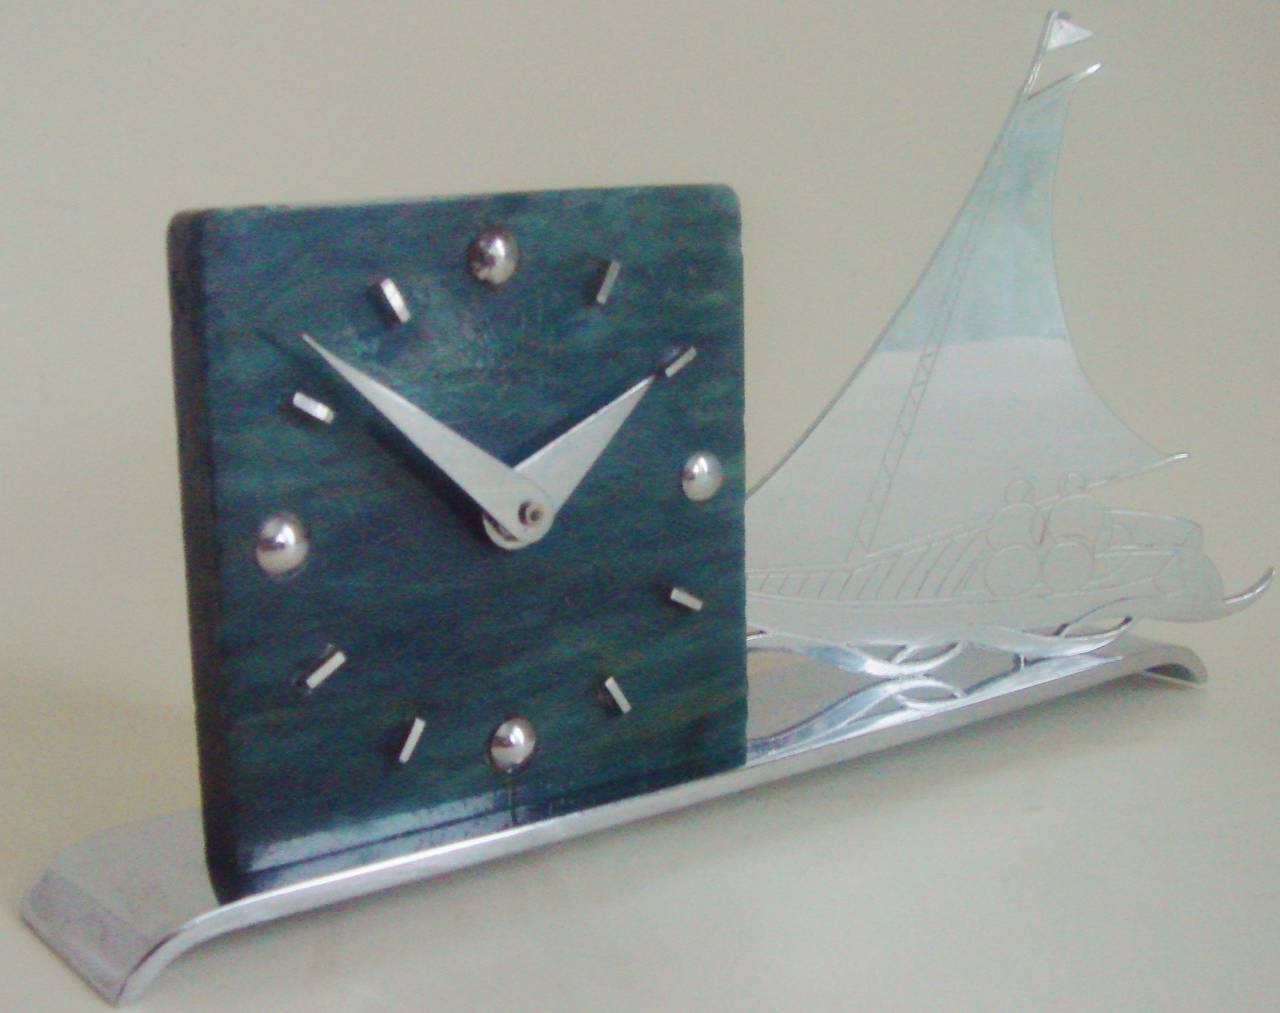 The body of this distinctive Art Deco mechanical shelf clock is made in a sea blue/green  marbled form of milk based French plastic that is known as Galalith or in the UK, Erinoid. It has a very geometric face with both dome numerals and hands in